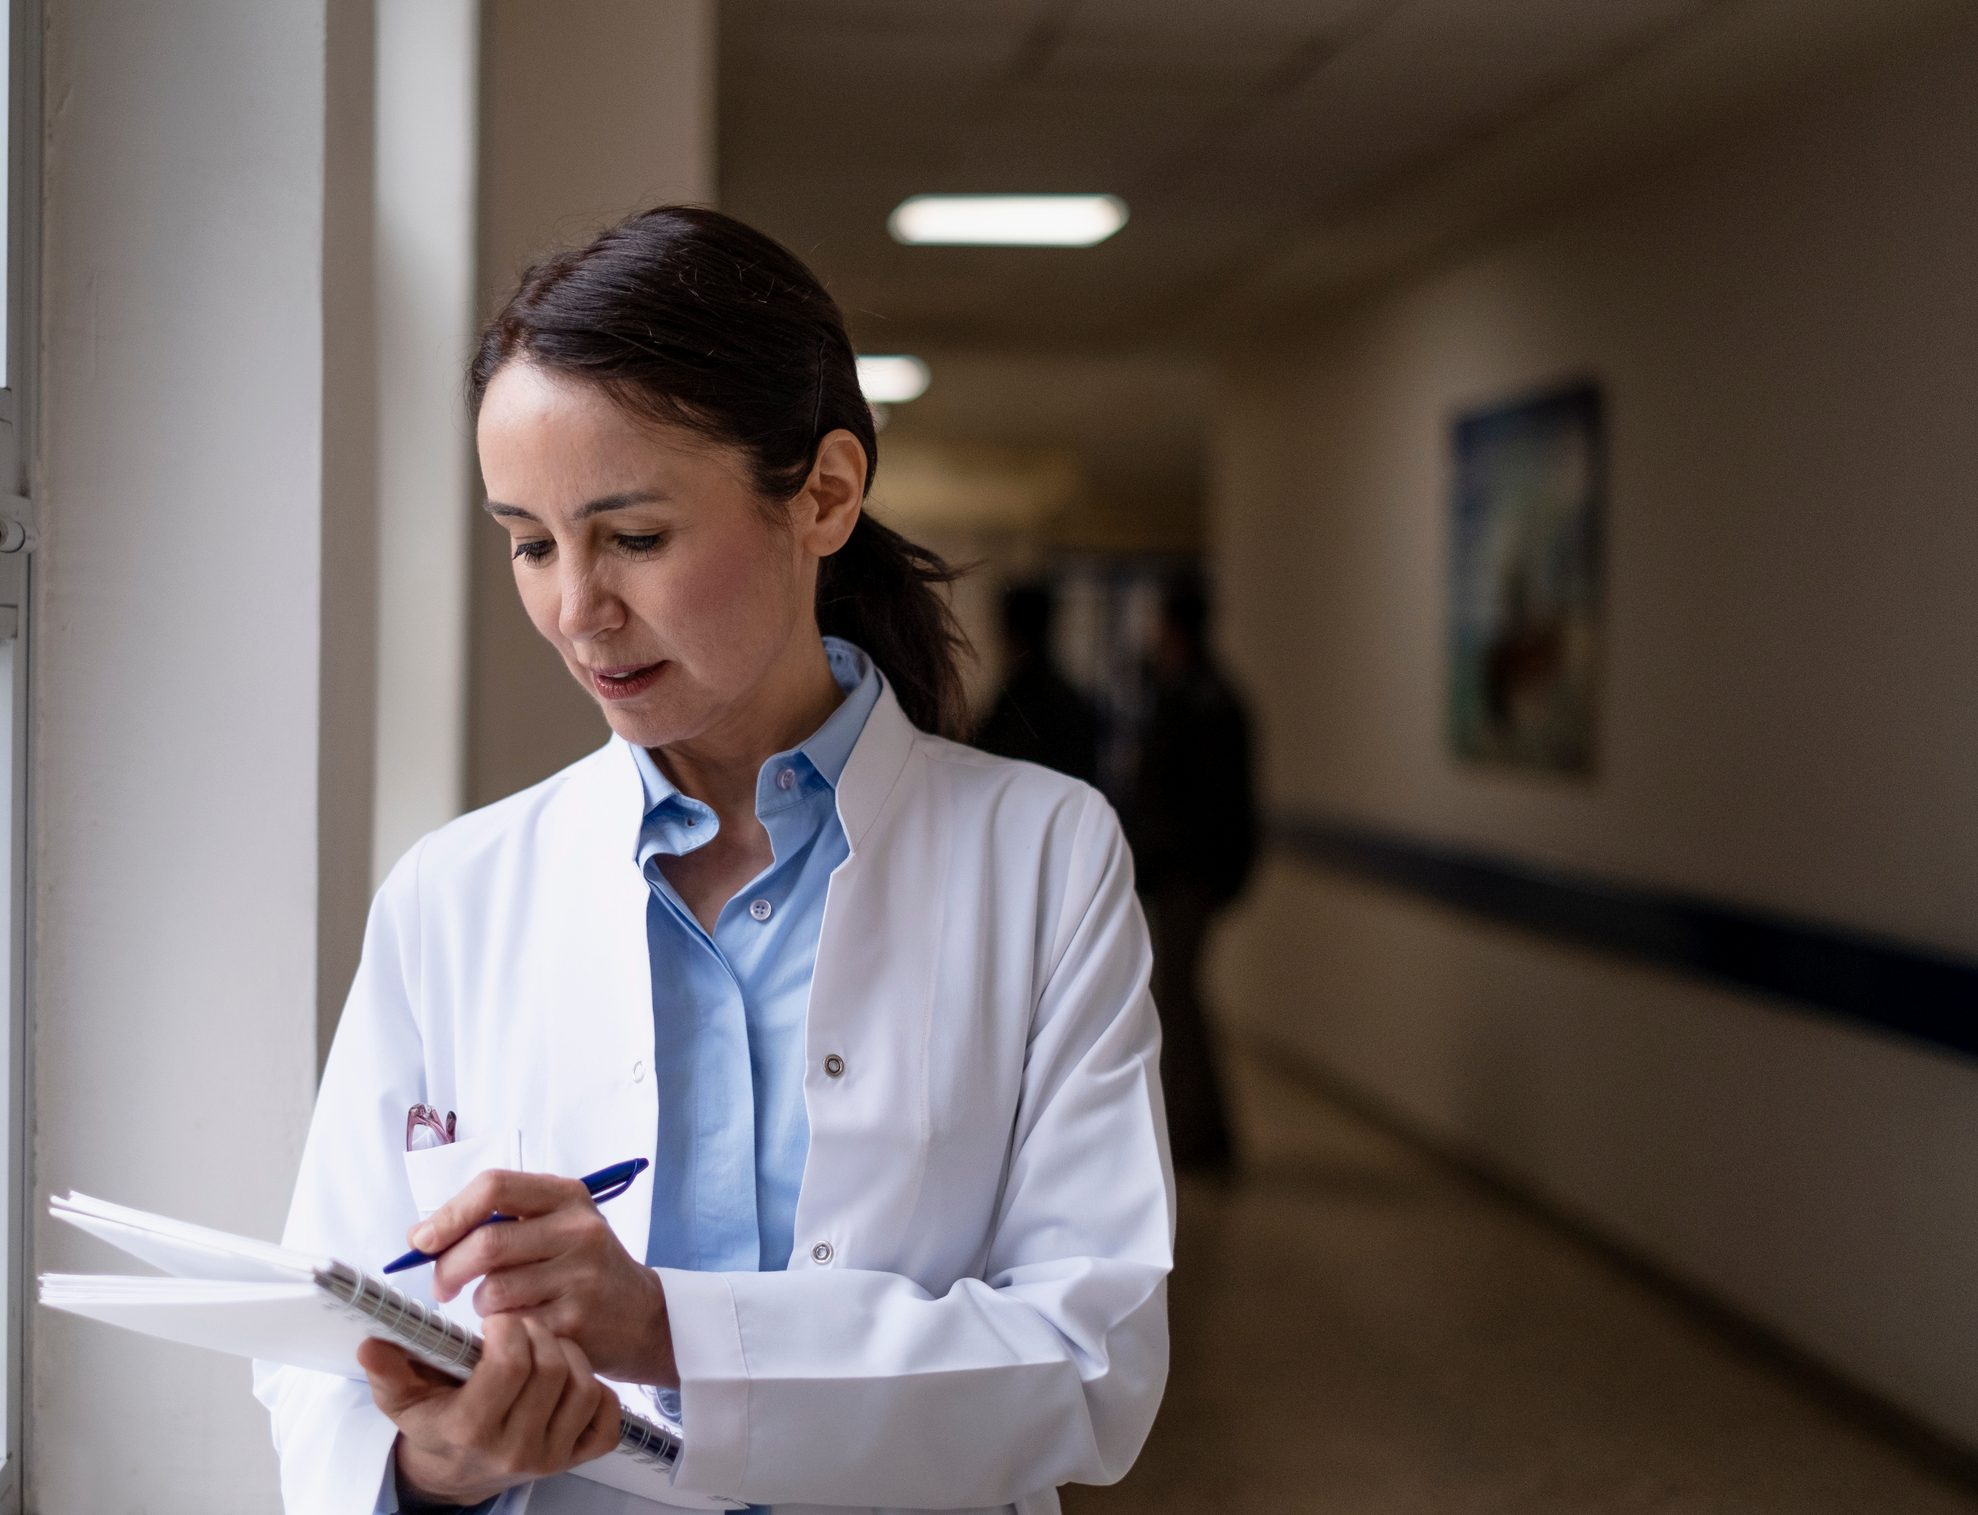 female doctor writing down information